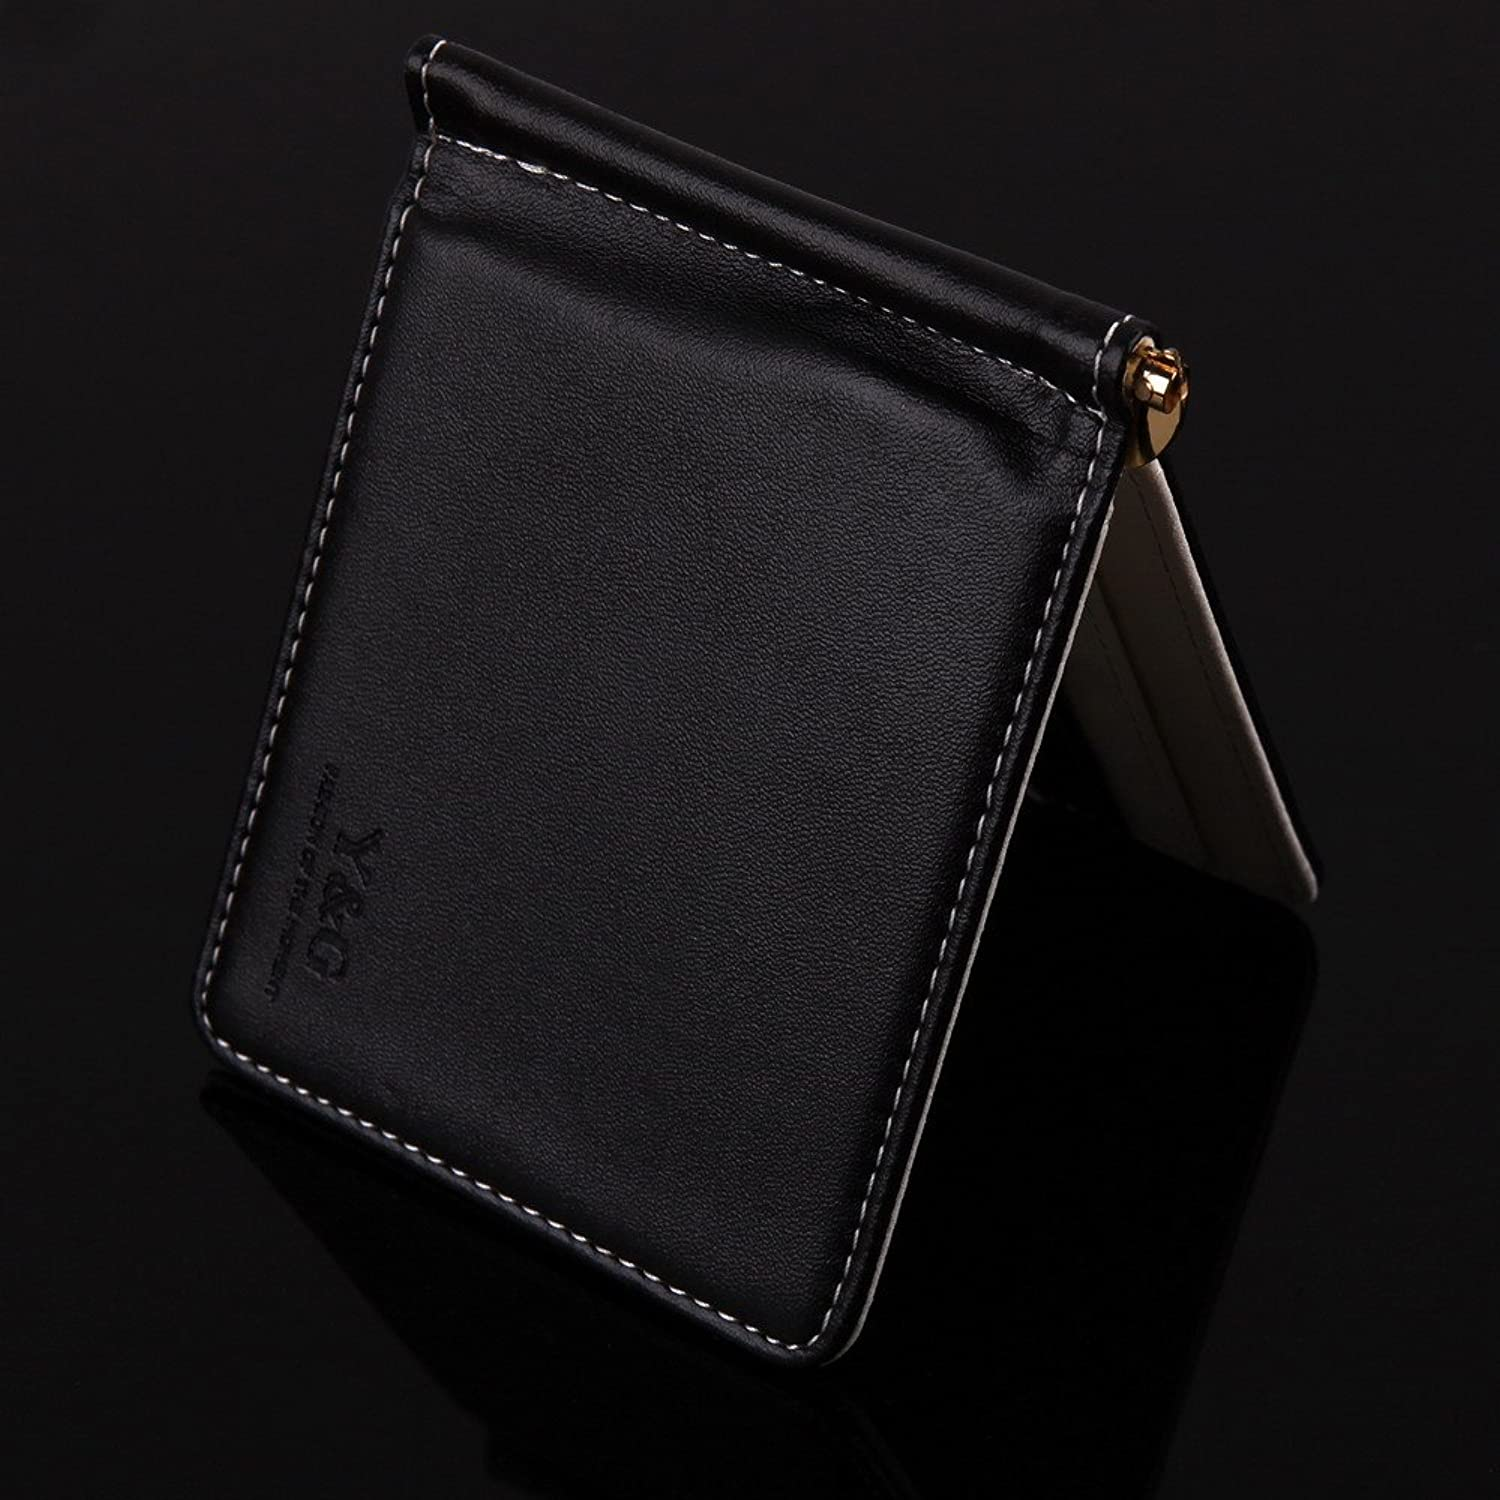 designer wallet with money clip cjai  YCA1001 Black Designer Wallet 5 Card Holder Mans Money Clip Wallet By Y&G  at Amazon Men's Clothing store: Designer Mens Wallets